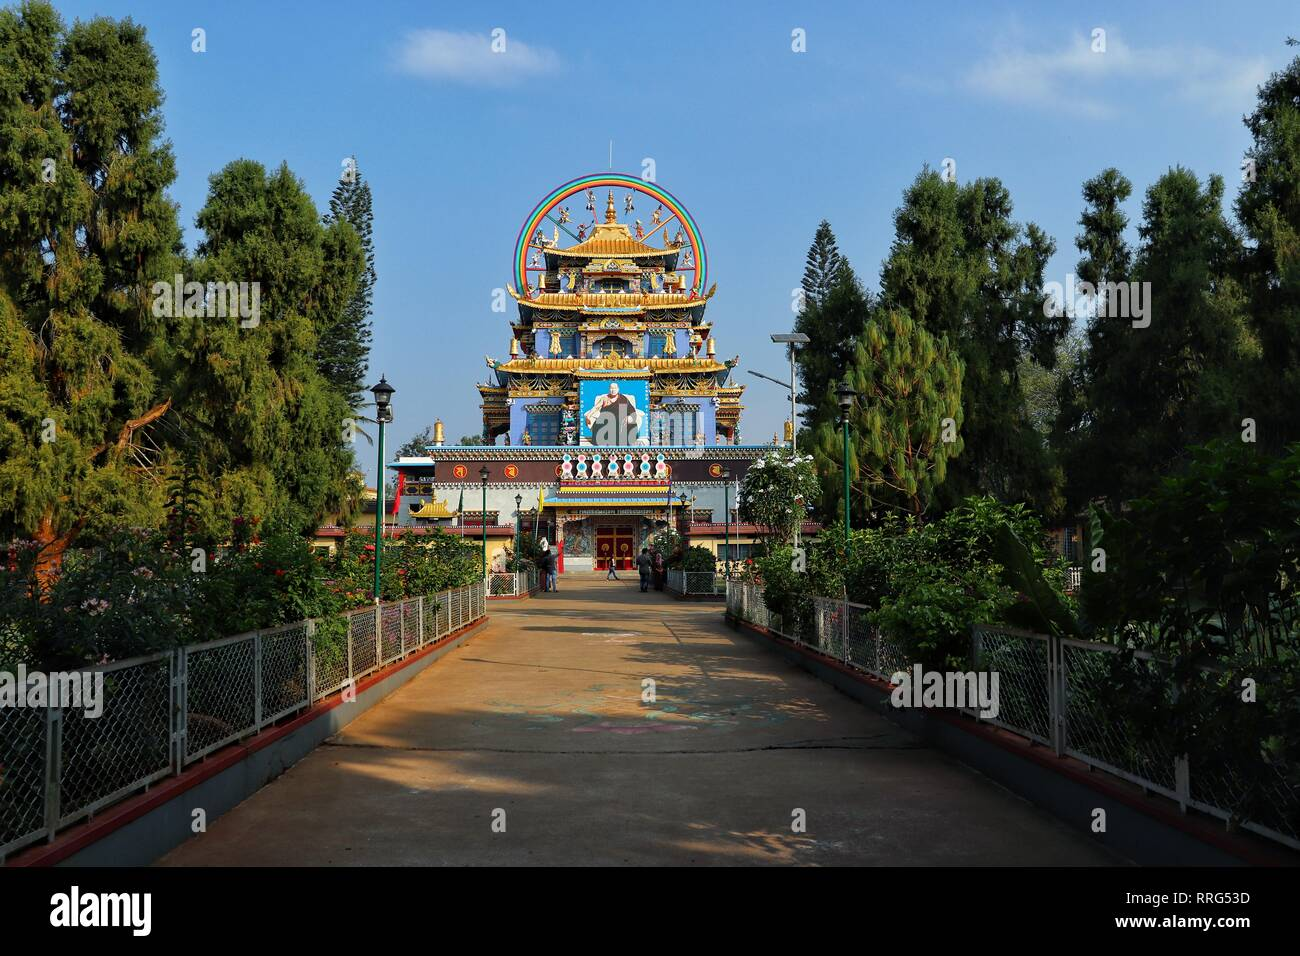 Golden temple mysore ,tradional picture,morning shot,colorful image - Stock Image